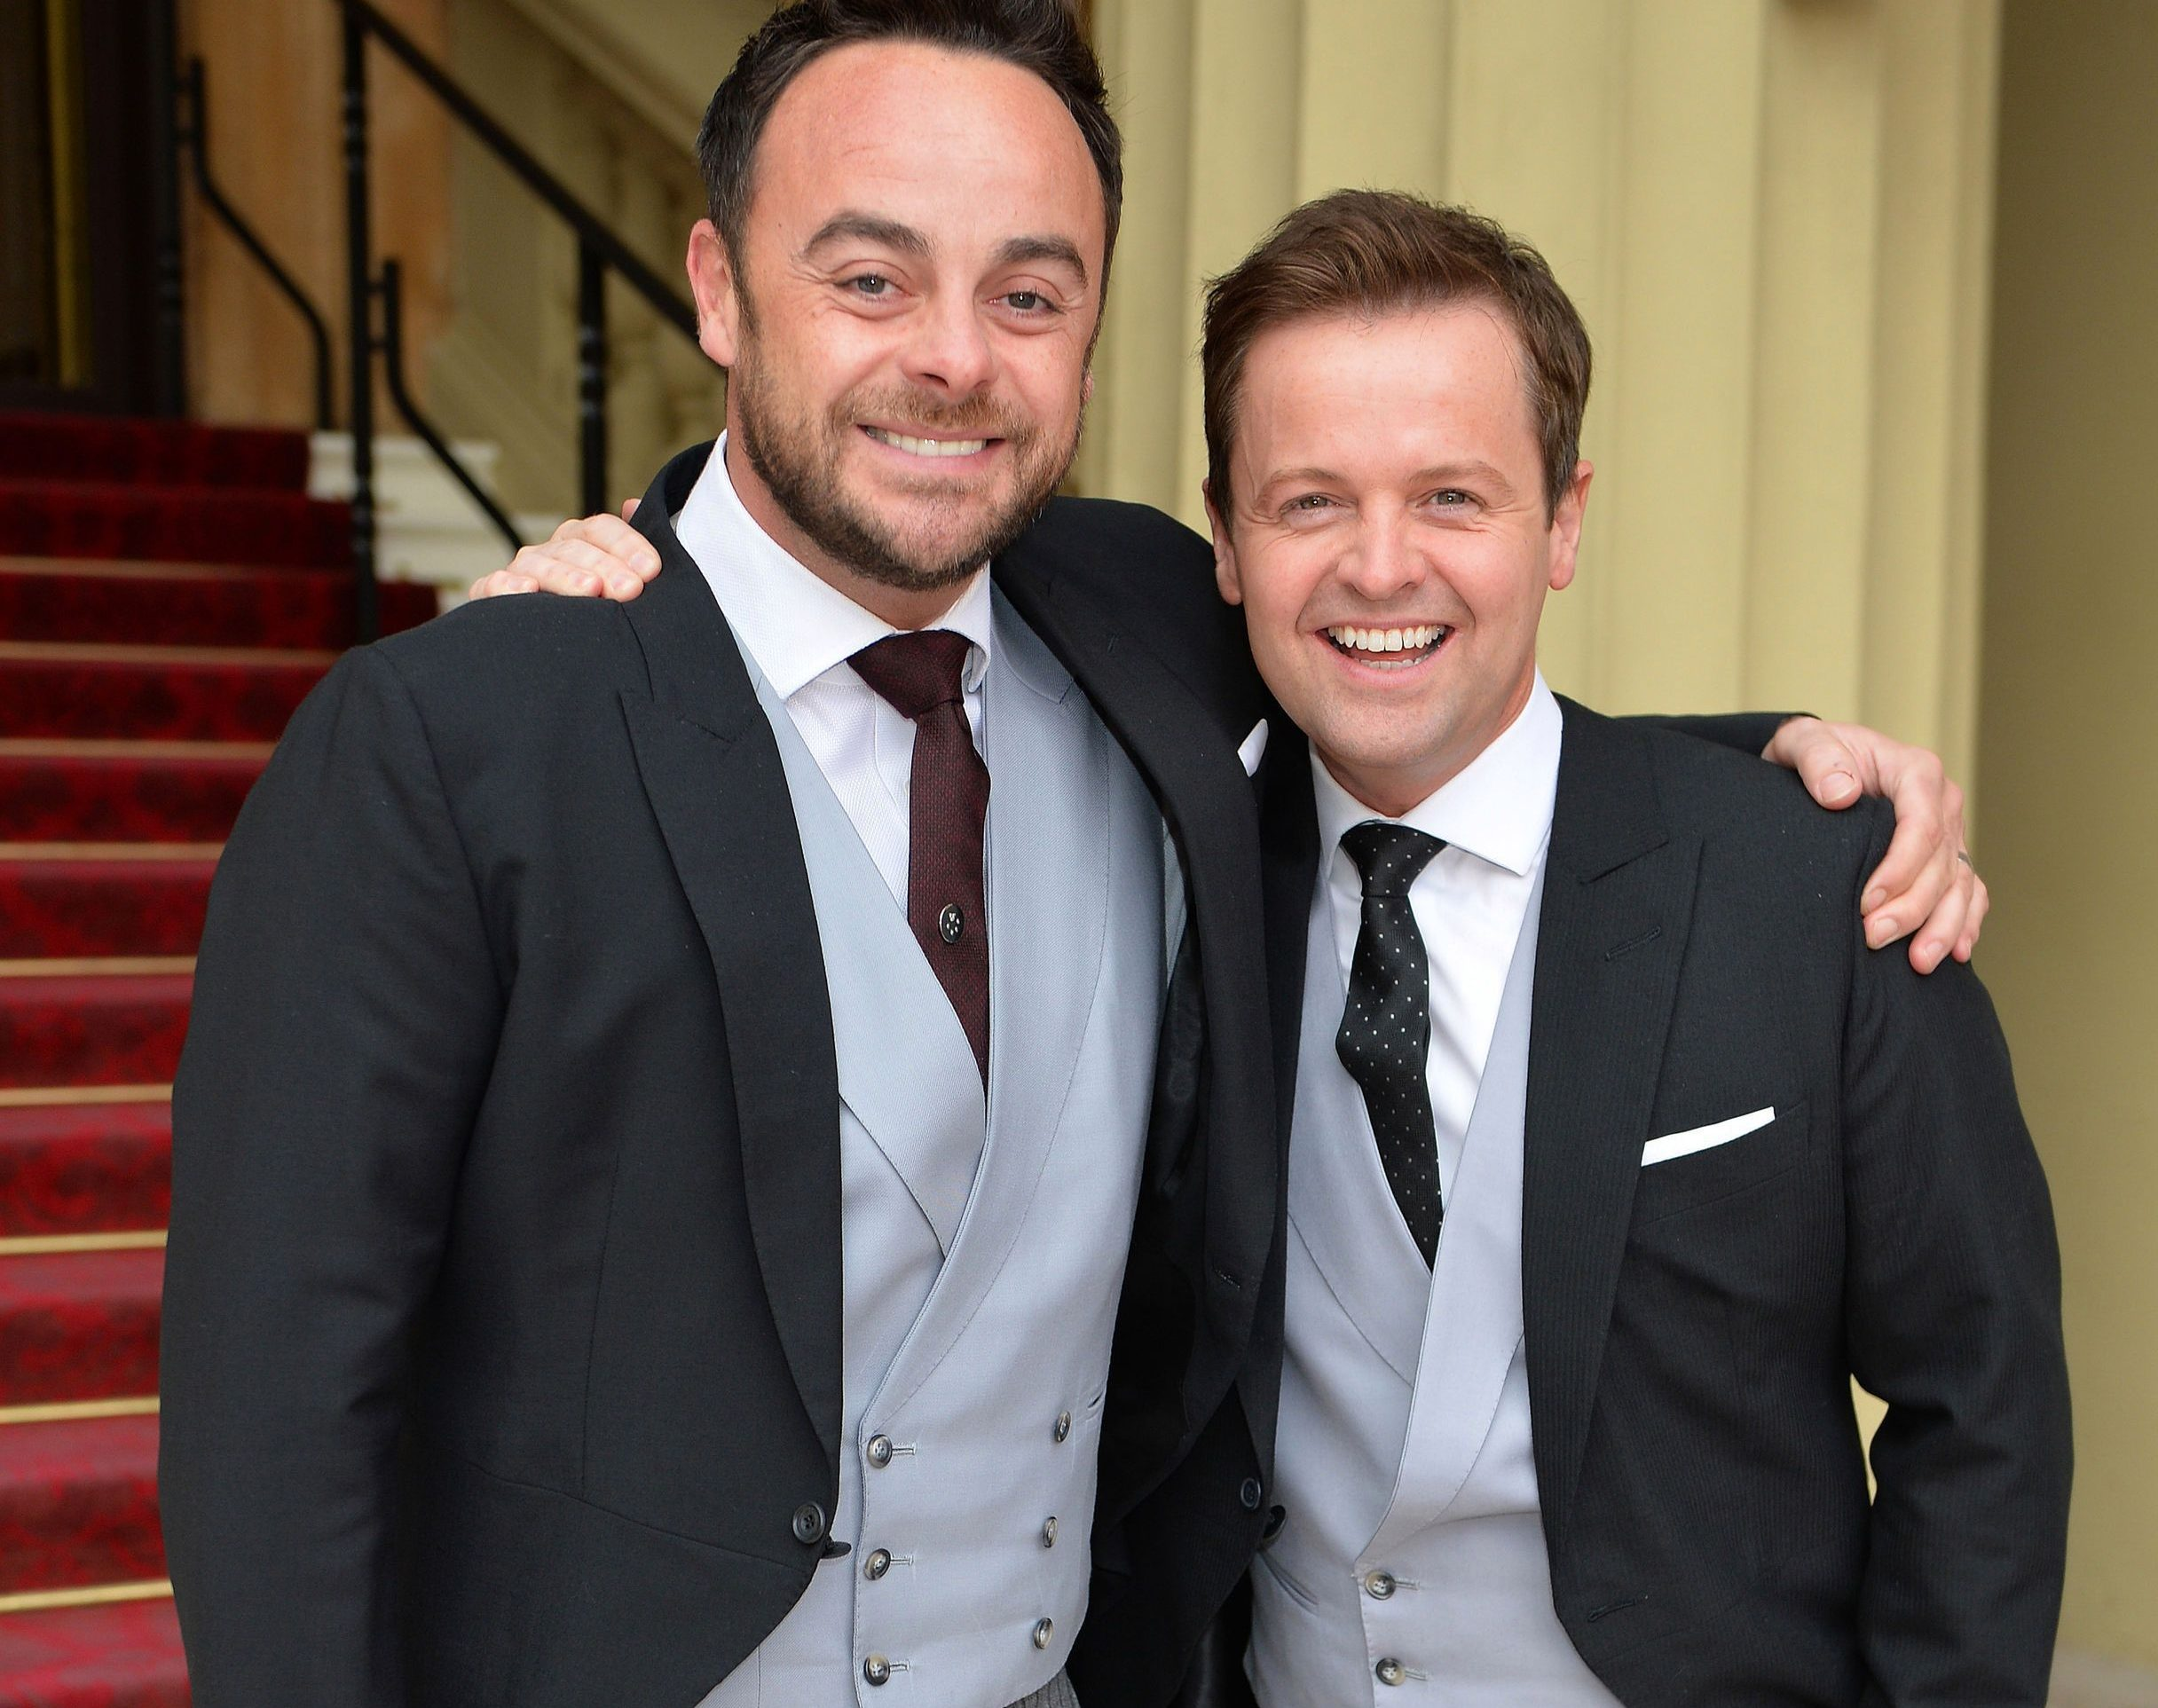 Declan Donnelly considered splitting from Ant McPartlin over drink-drive arrest: 'It was indefensible'